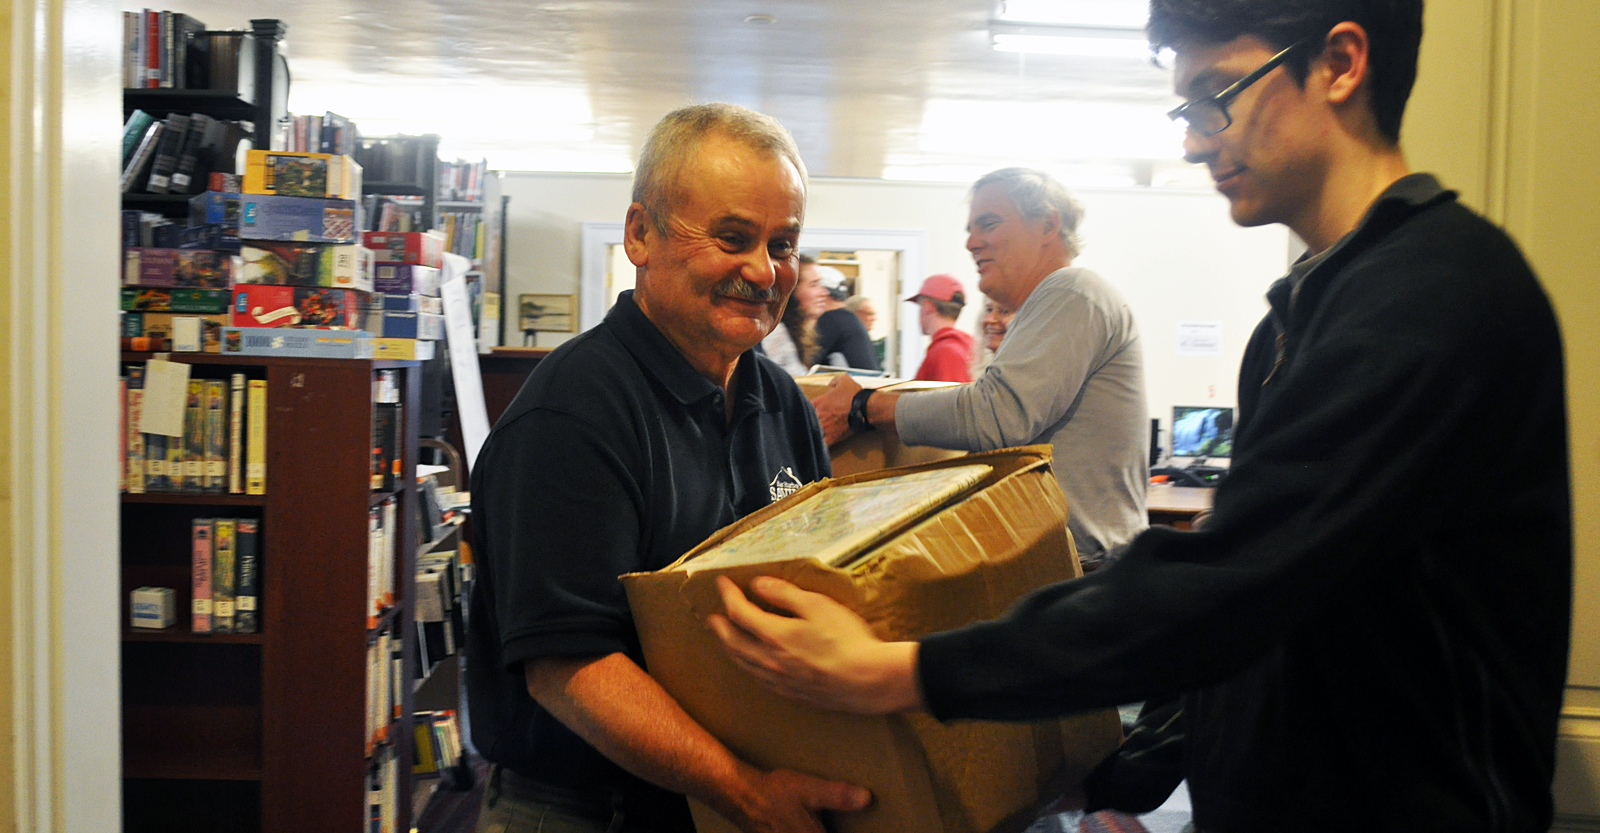 The entire team went and hauled books for the Jesup Memorial Library book sale and fund-raiser. Shown: Bill Weir